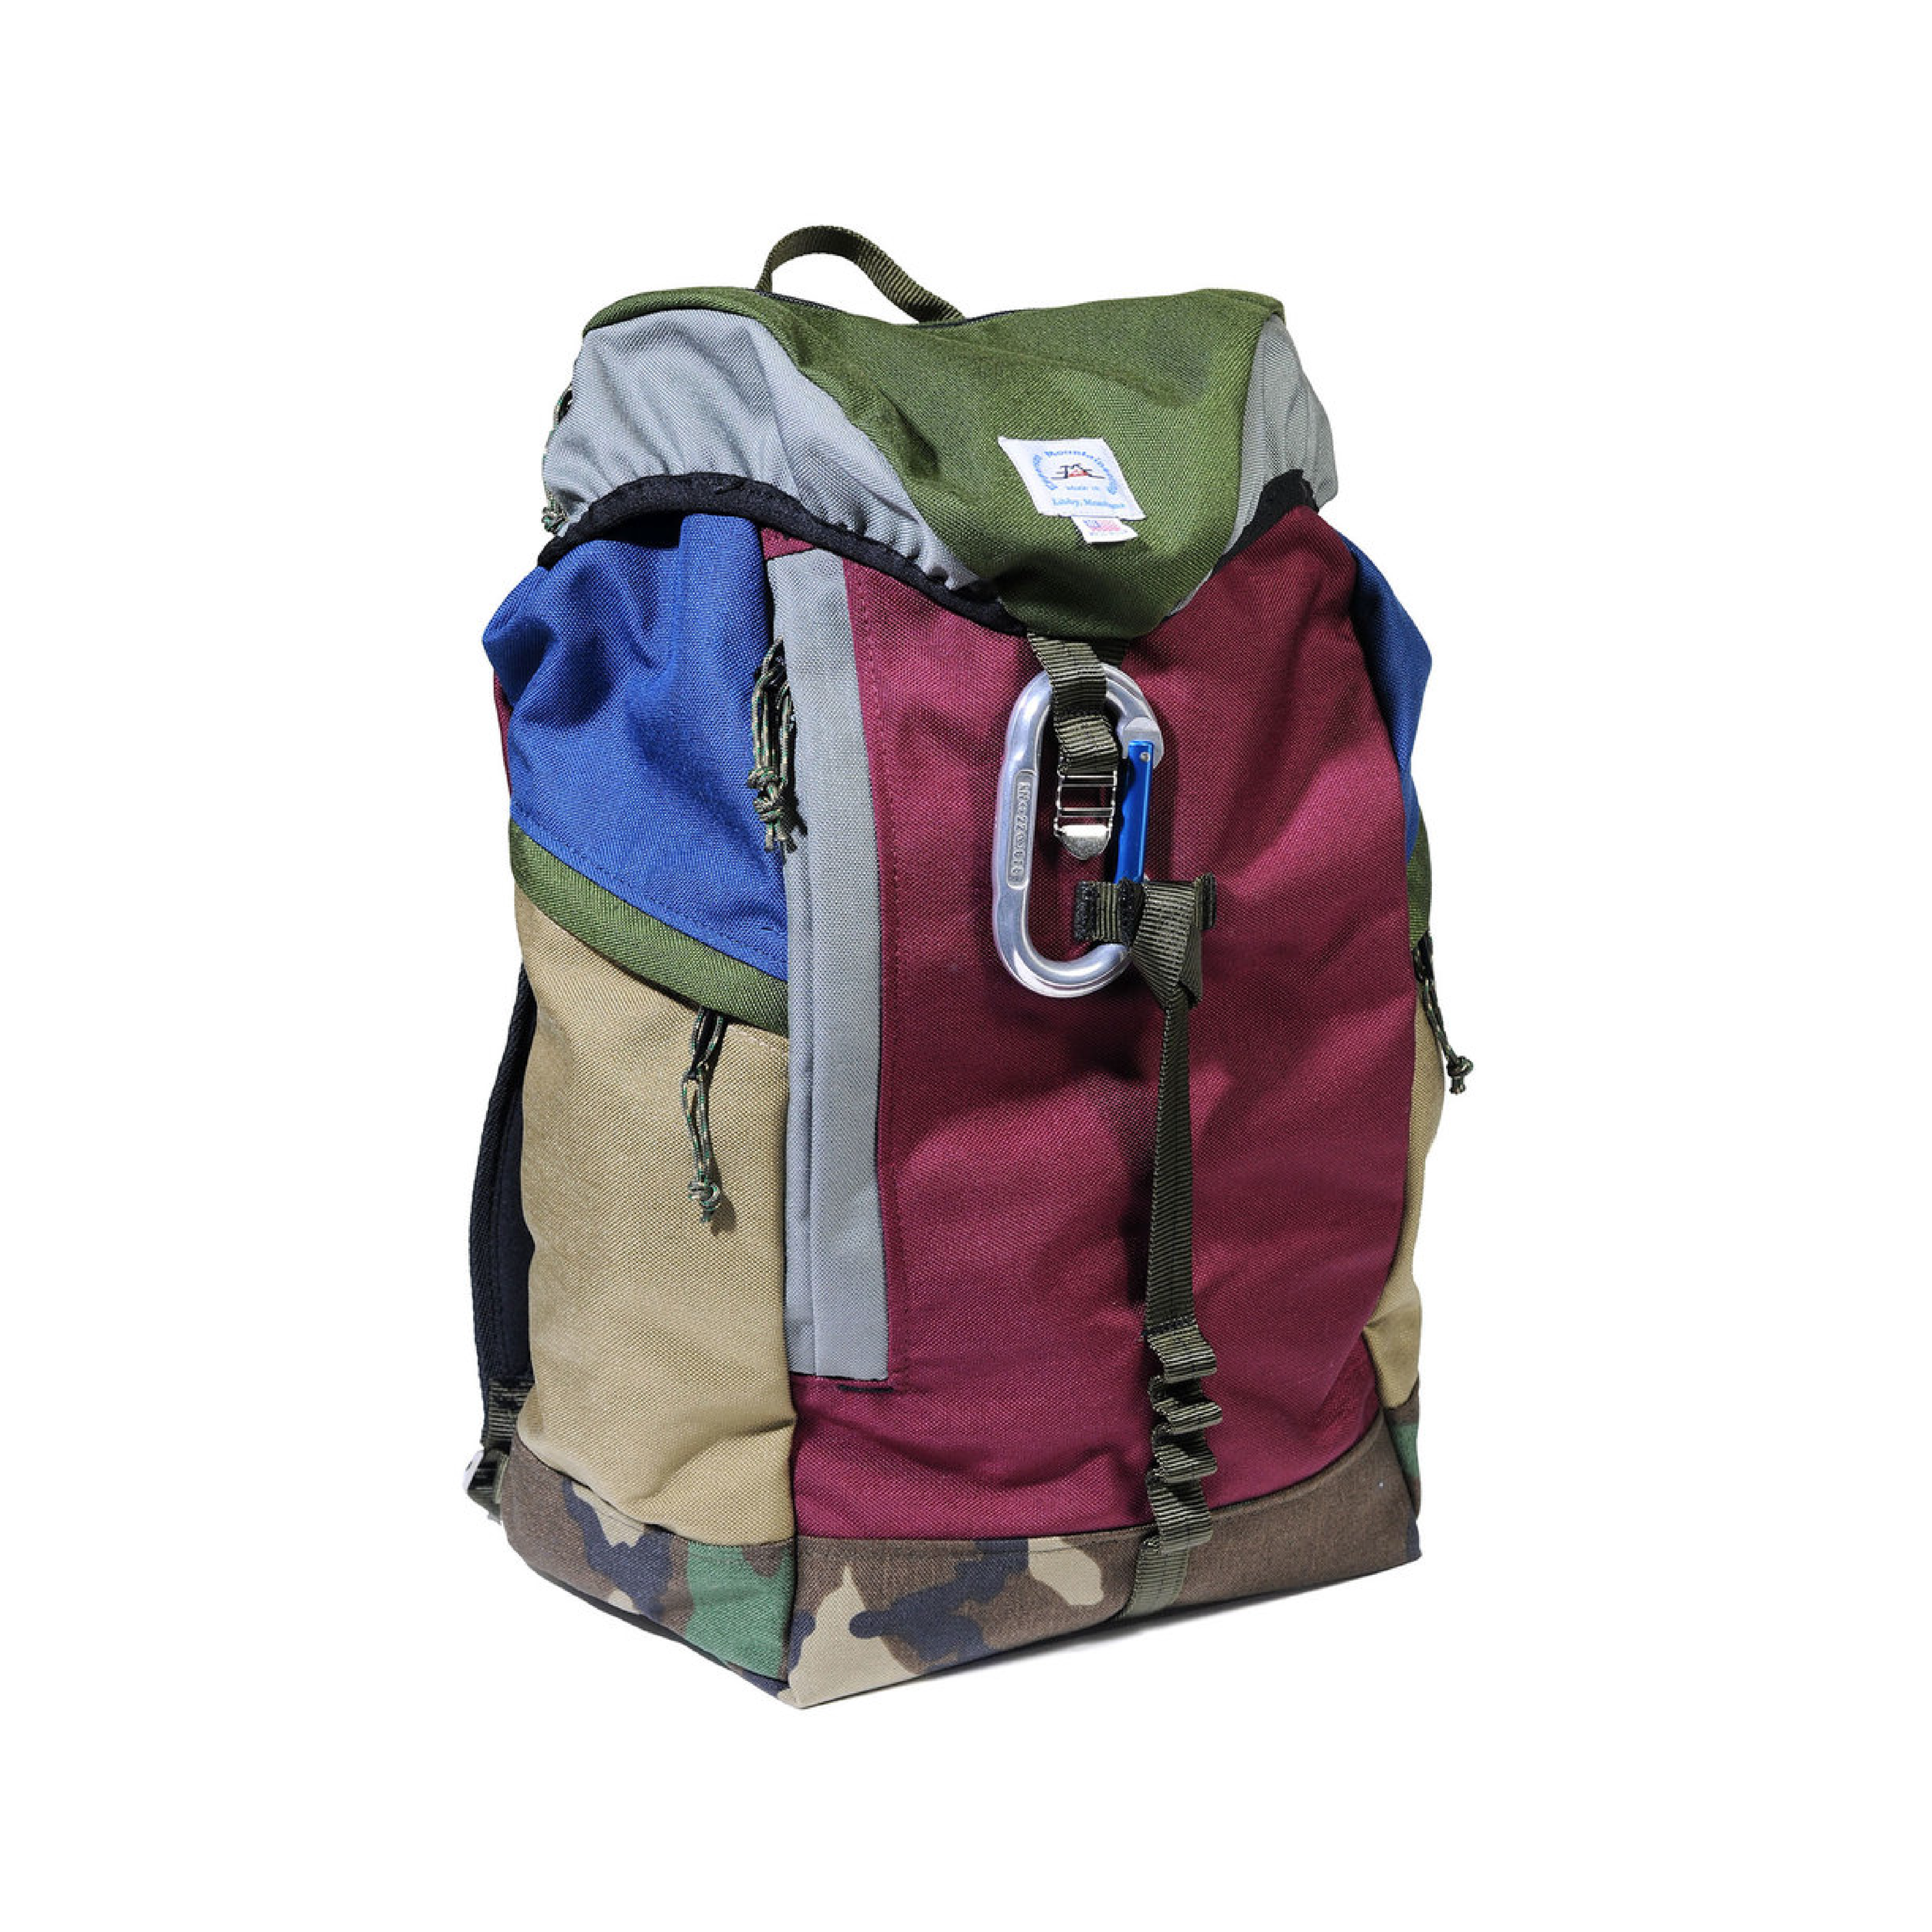 LARGE CLIMB PACK (MOSS / BORDEAUX)    By  Epperson Mountaineering     A rugged pack inspired by climbers with enough pockets and webbing loops to carry all your gear, plus more.    SHOP NOW          £140